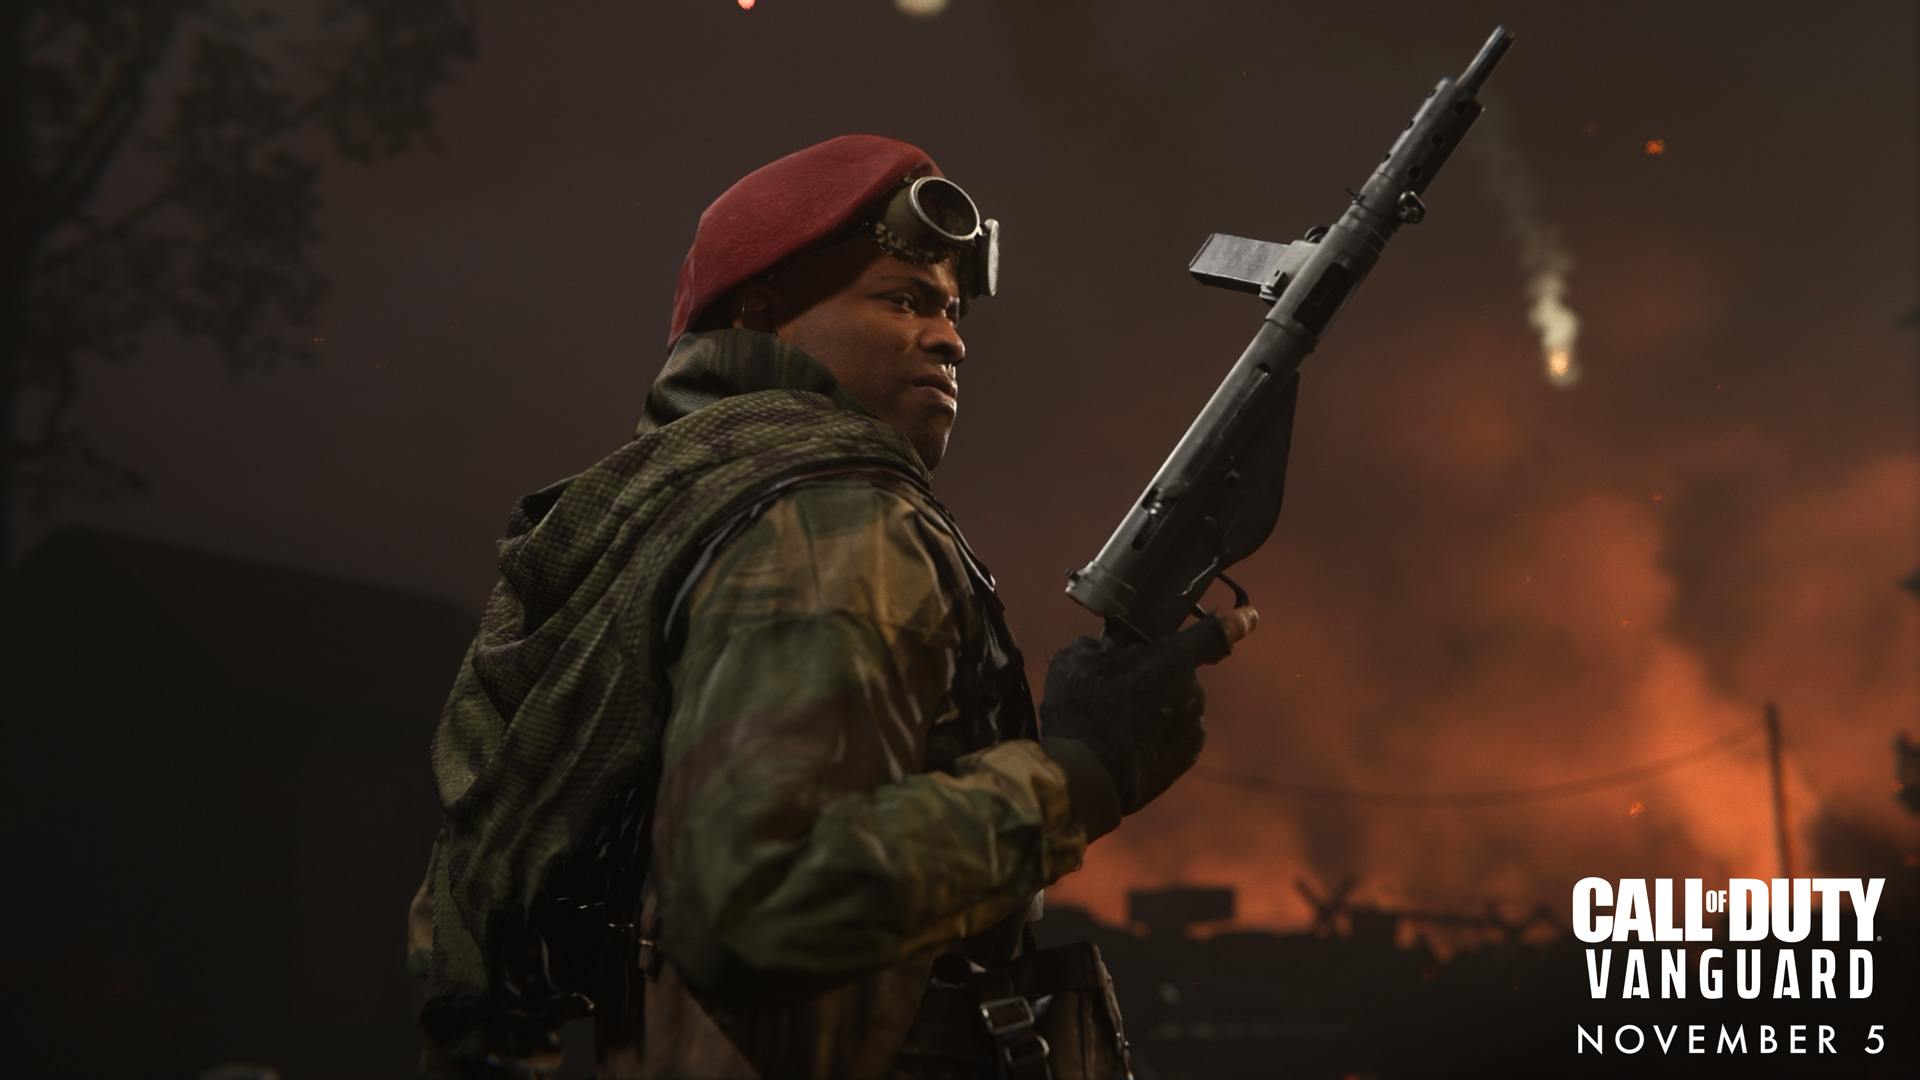 One of the characters from Call of Duty: Vanguard holding a gun